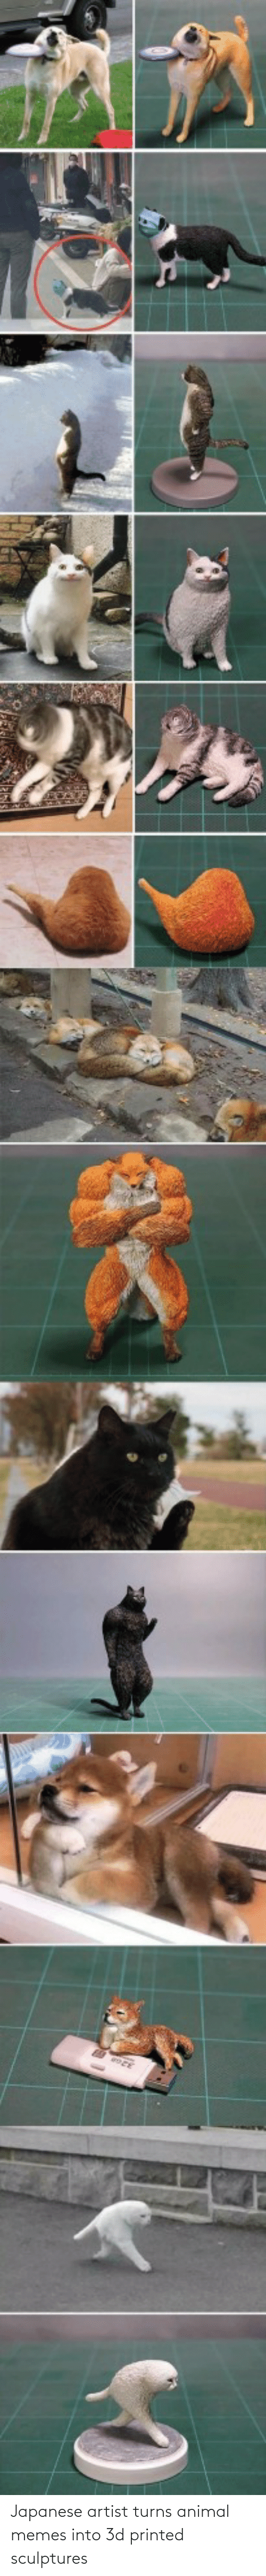 Japanese: Japanese artist turns animal memes into 3d printed sculptures